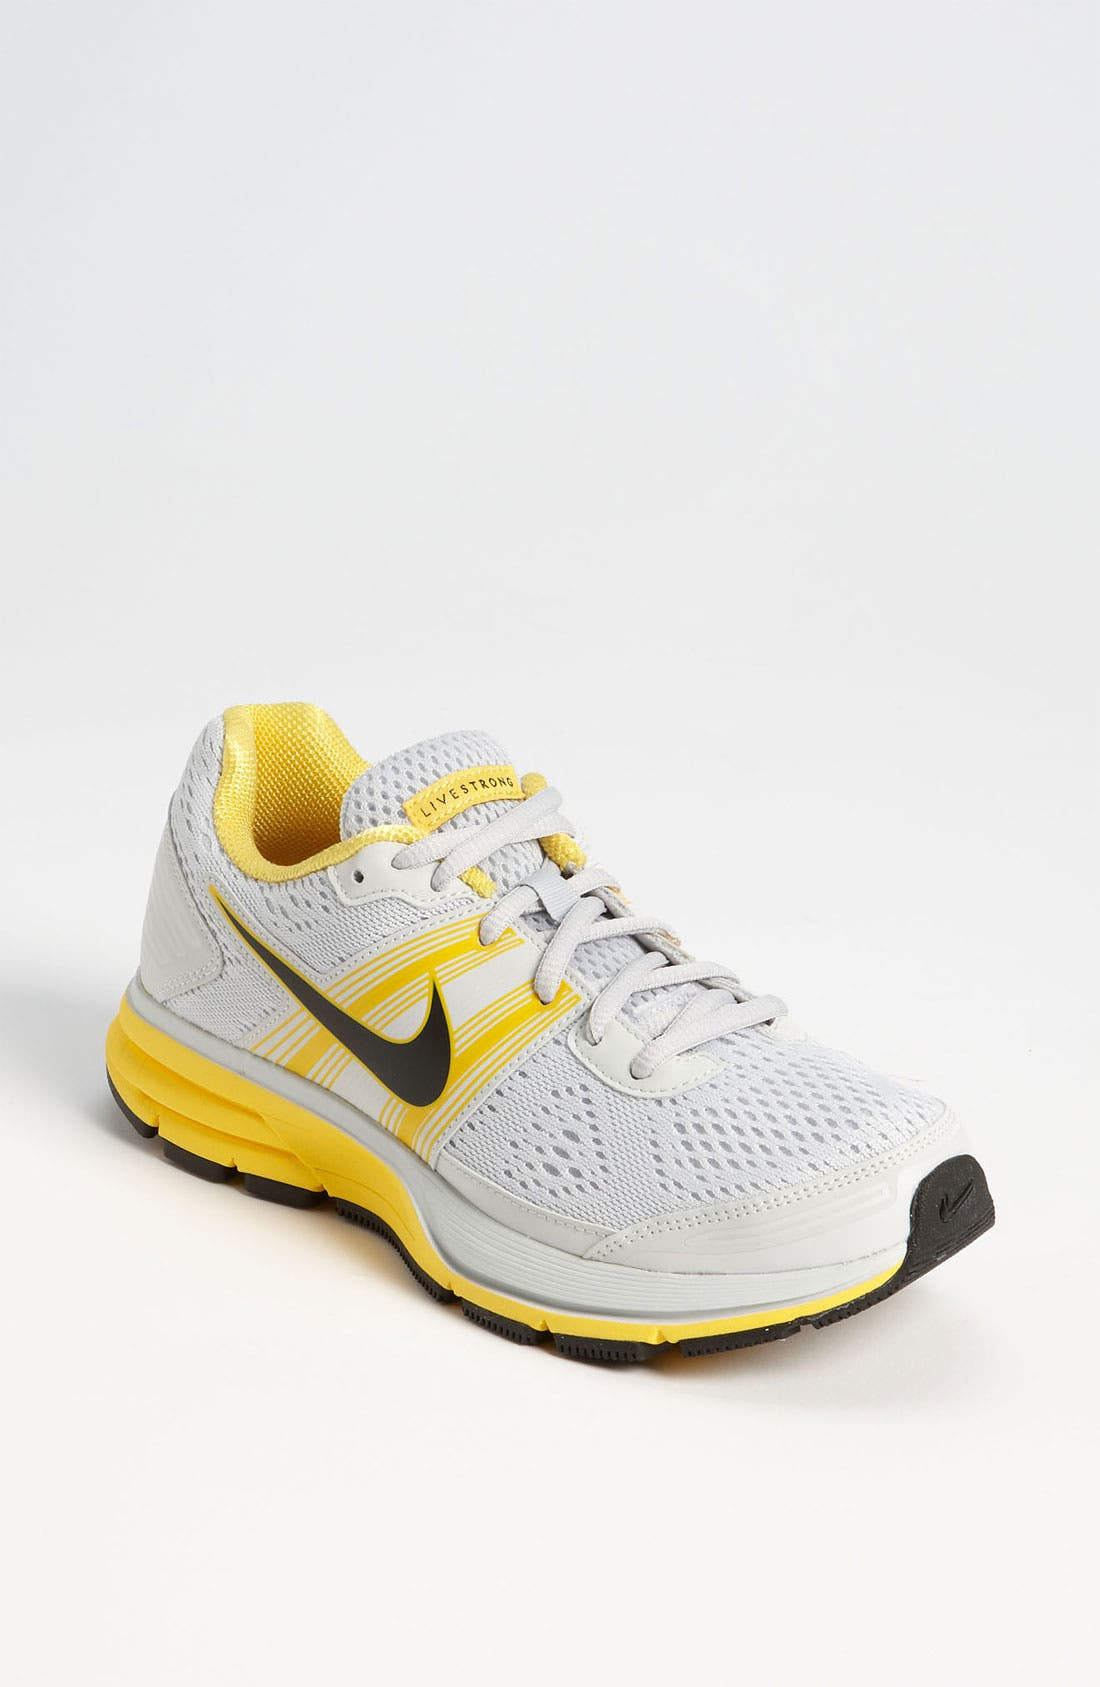 Alternate Image 1 Selected - Nike 'Air Pegasus + 29 Livestrong' Running Shoe (Women)